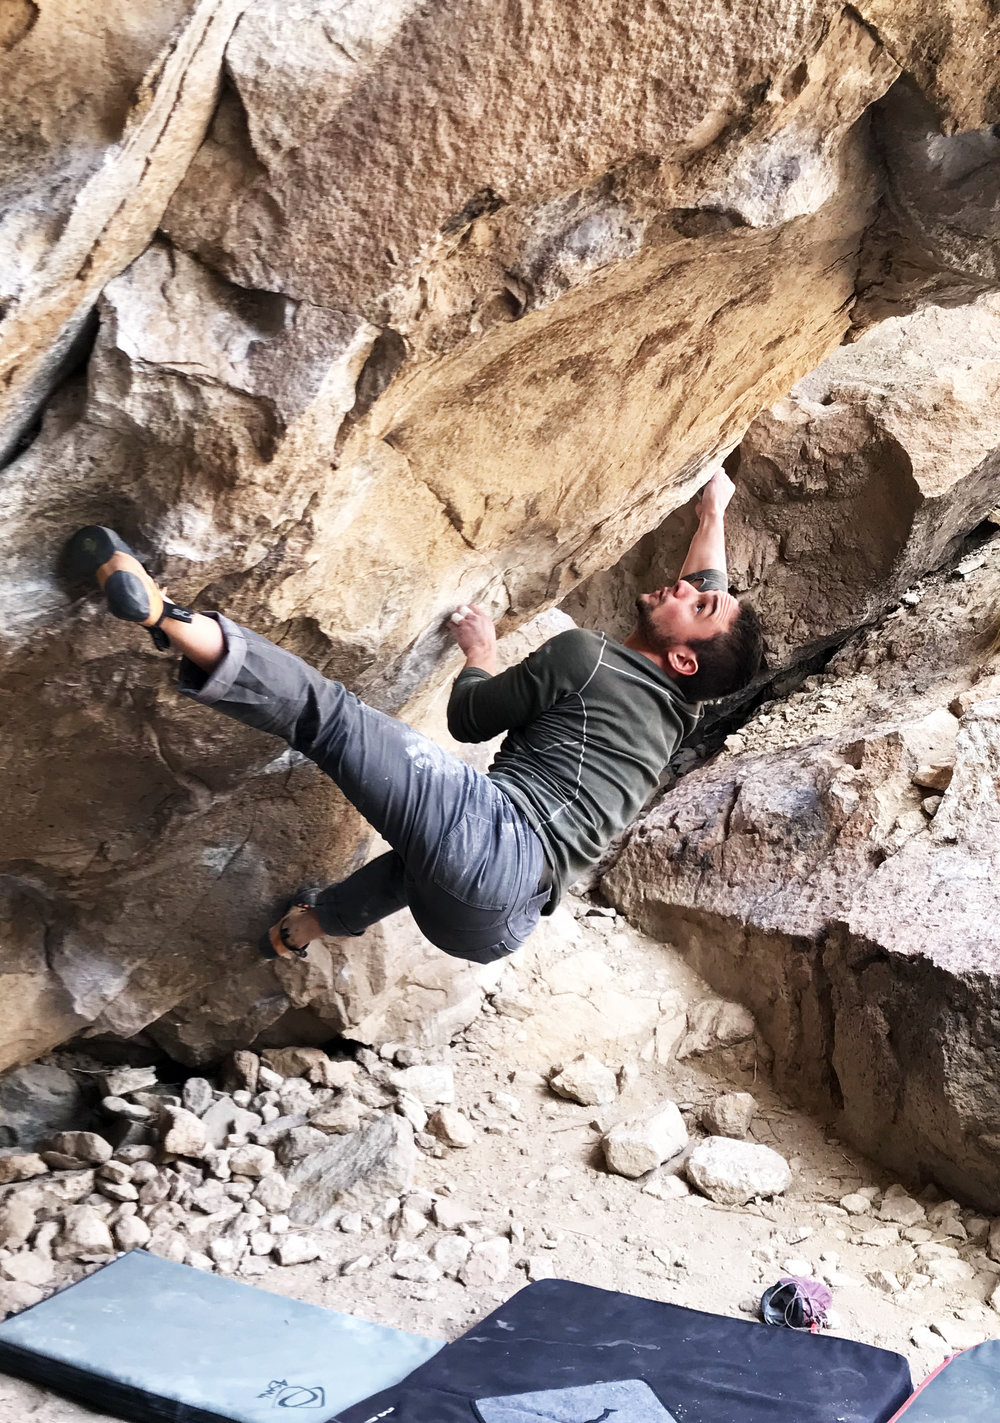 Standing Kill Order (V9) in the Happy Boulders